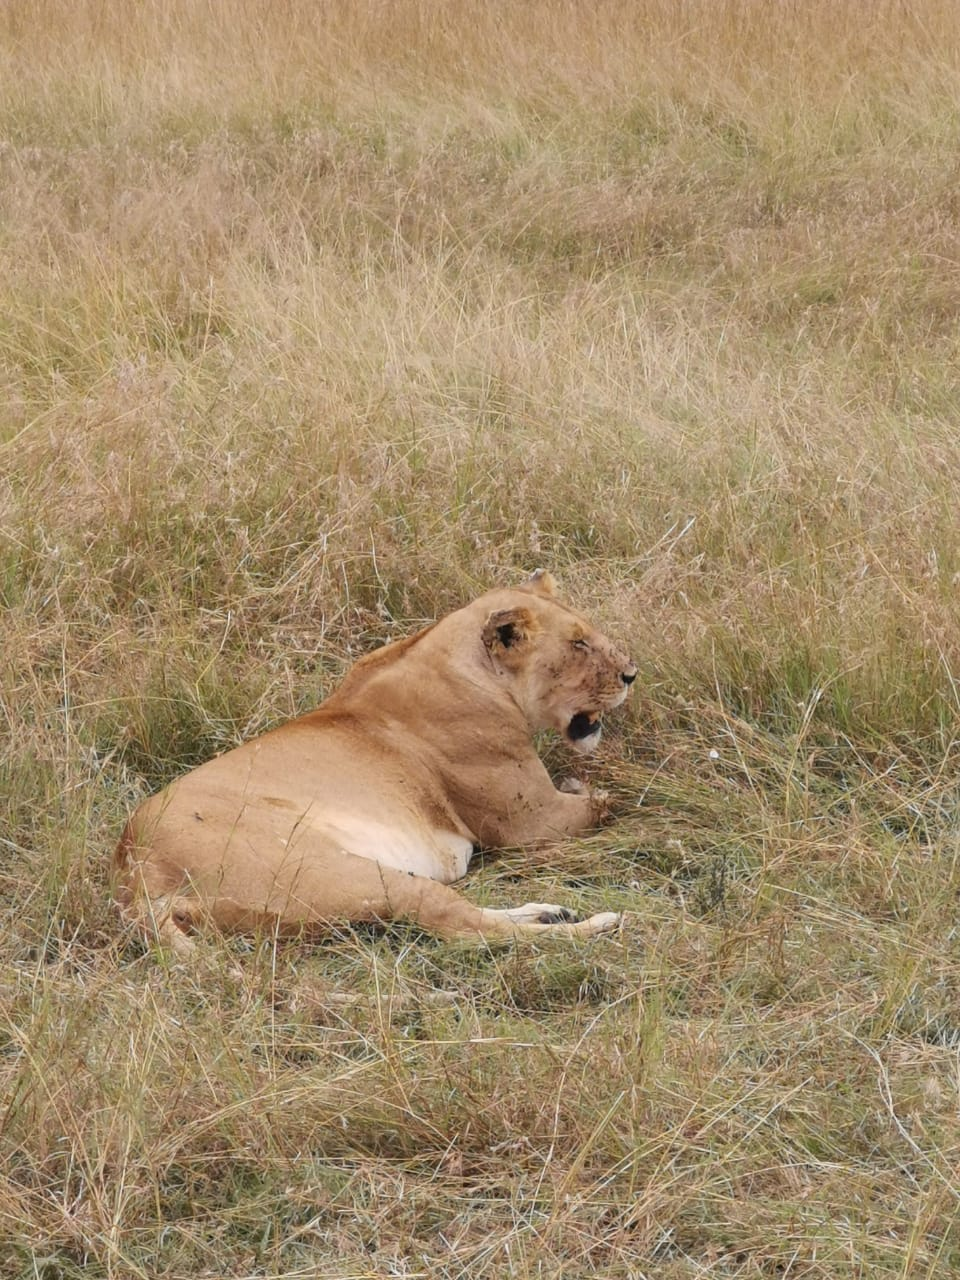 Spot lions in the wilderness